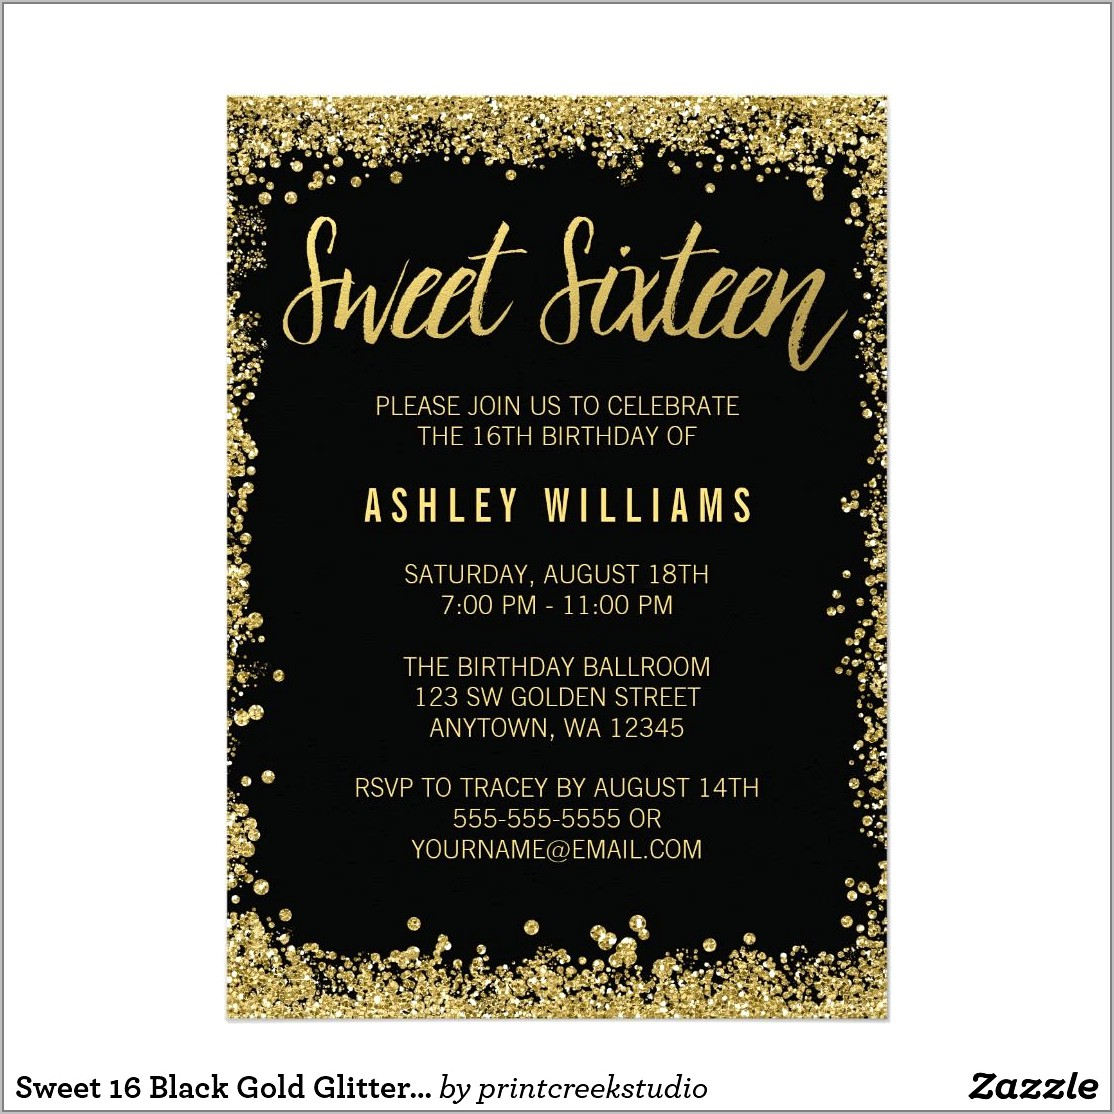 Sweet 16 Invitation Designs